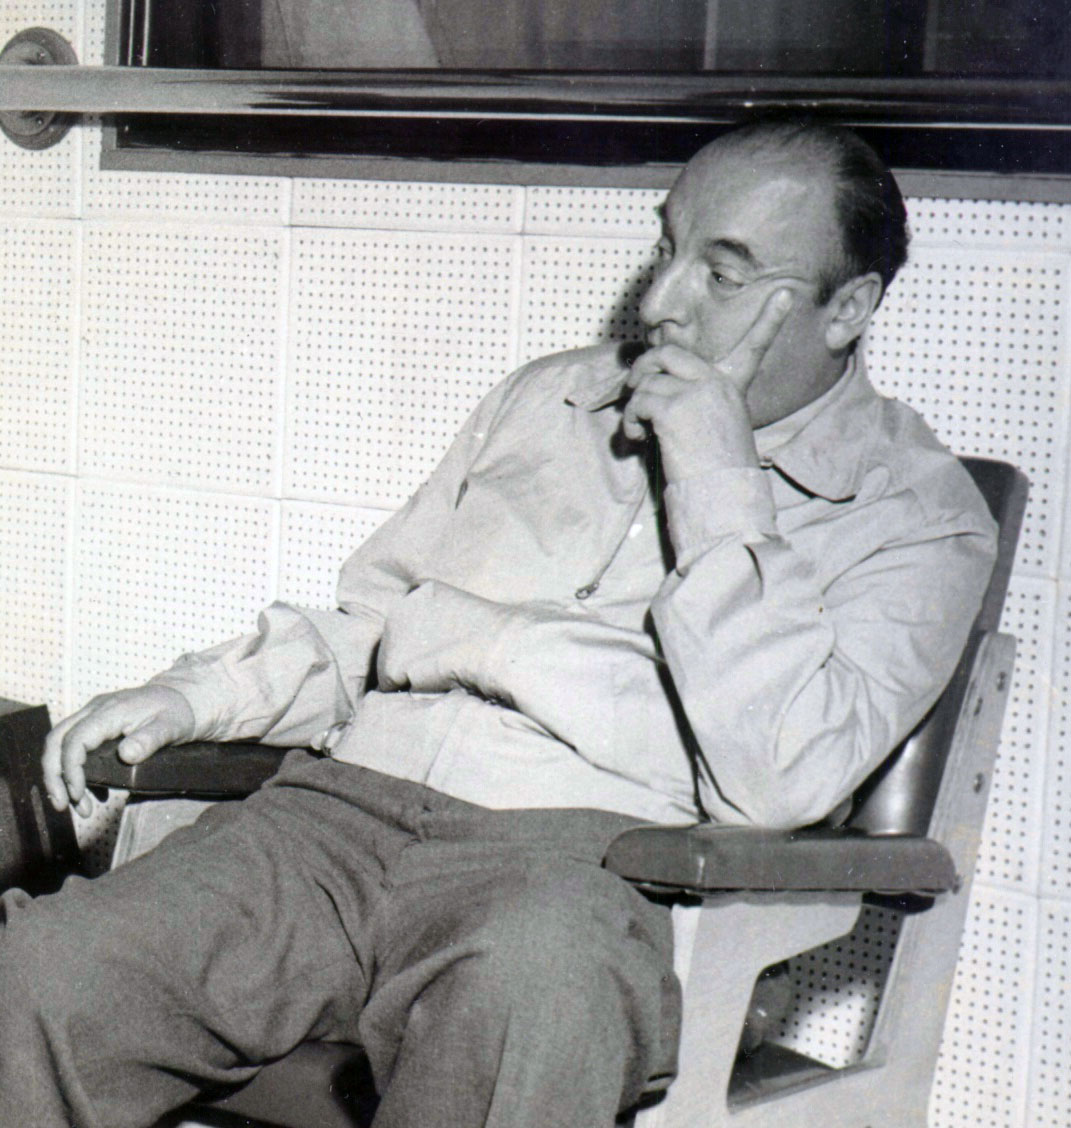 Lost Pablo Neruda poems---found and crowdfunded